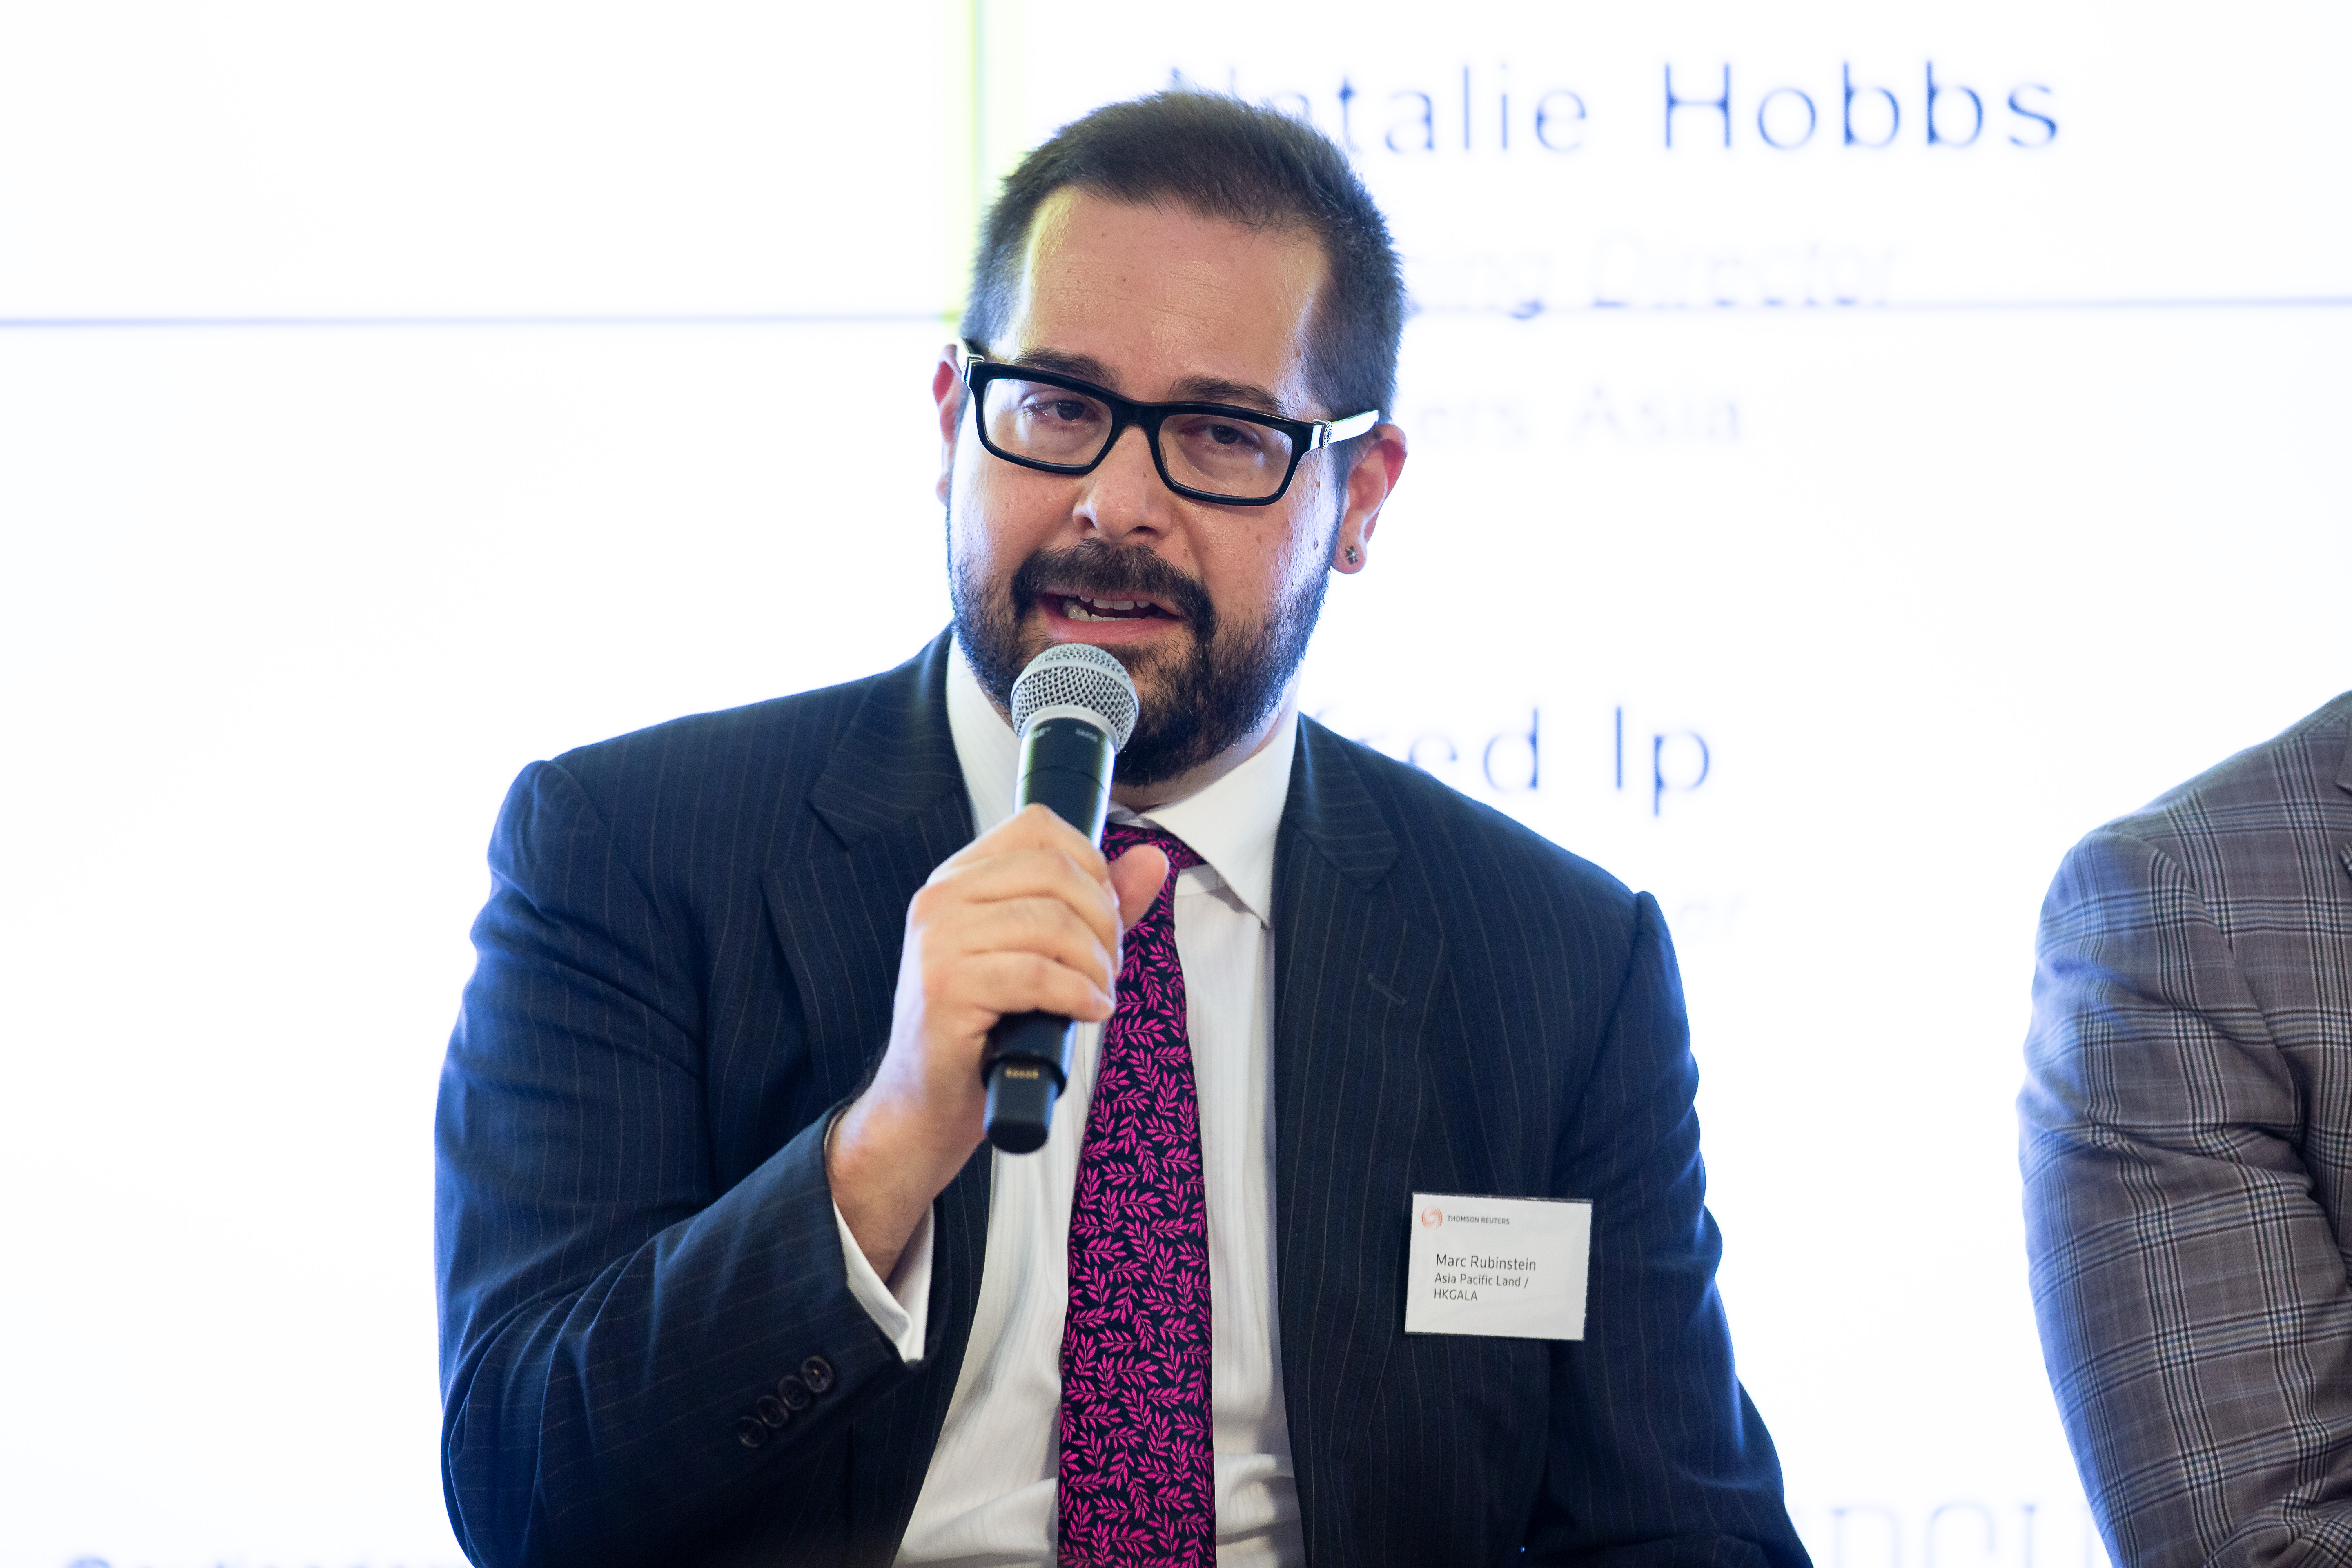 In Hong Kong, Legal Leaders discuss next steps after the QT case 1